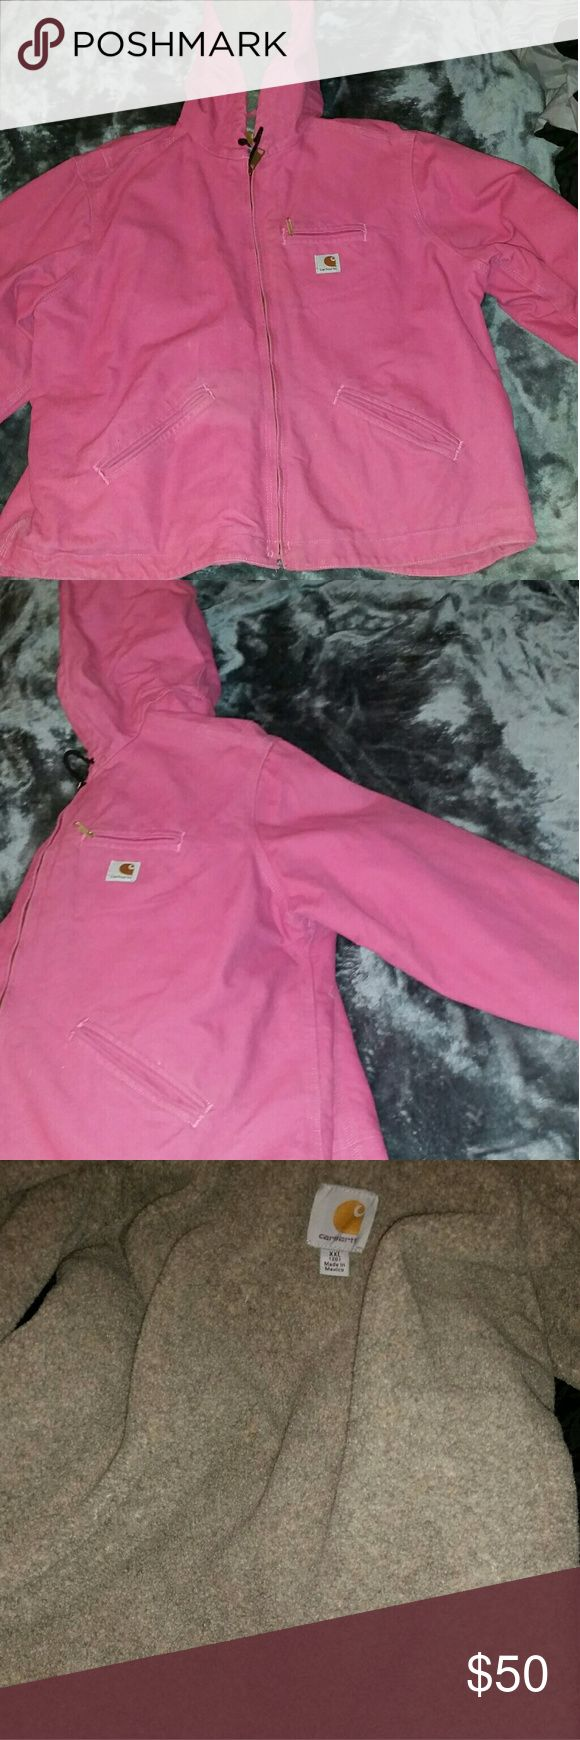 Pink Carhartt Super warm and comfortable. A little bit of discoloration along seams but not noticeable. Carhartt Jackets & Coats